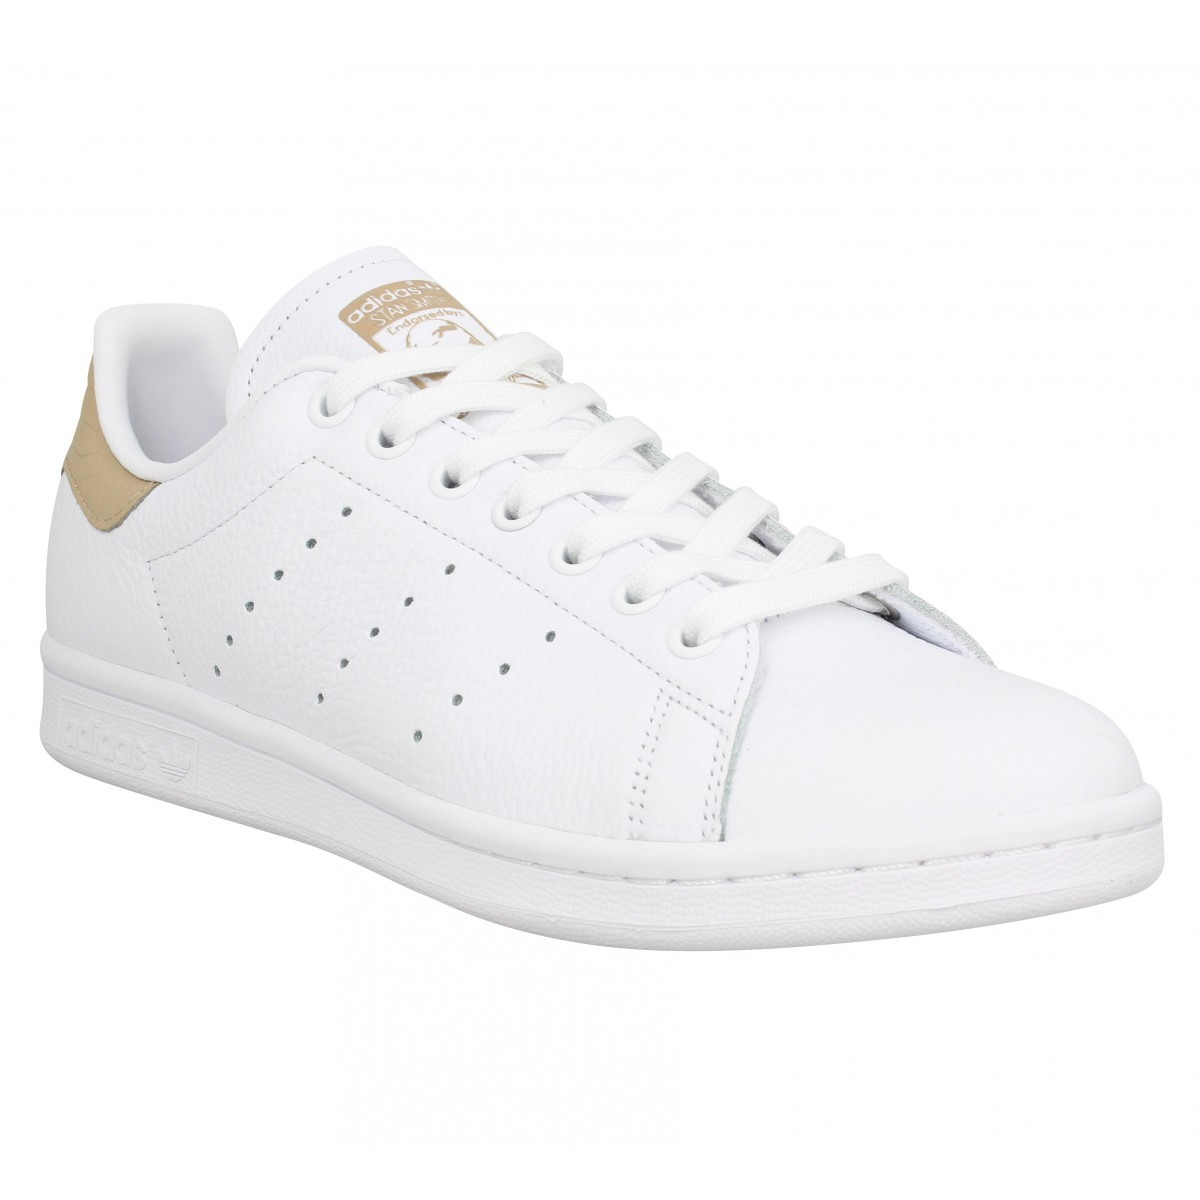 basquette homme adidas stan smith